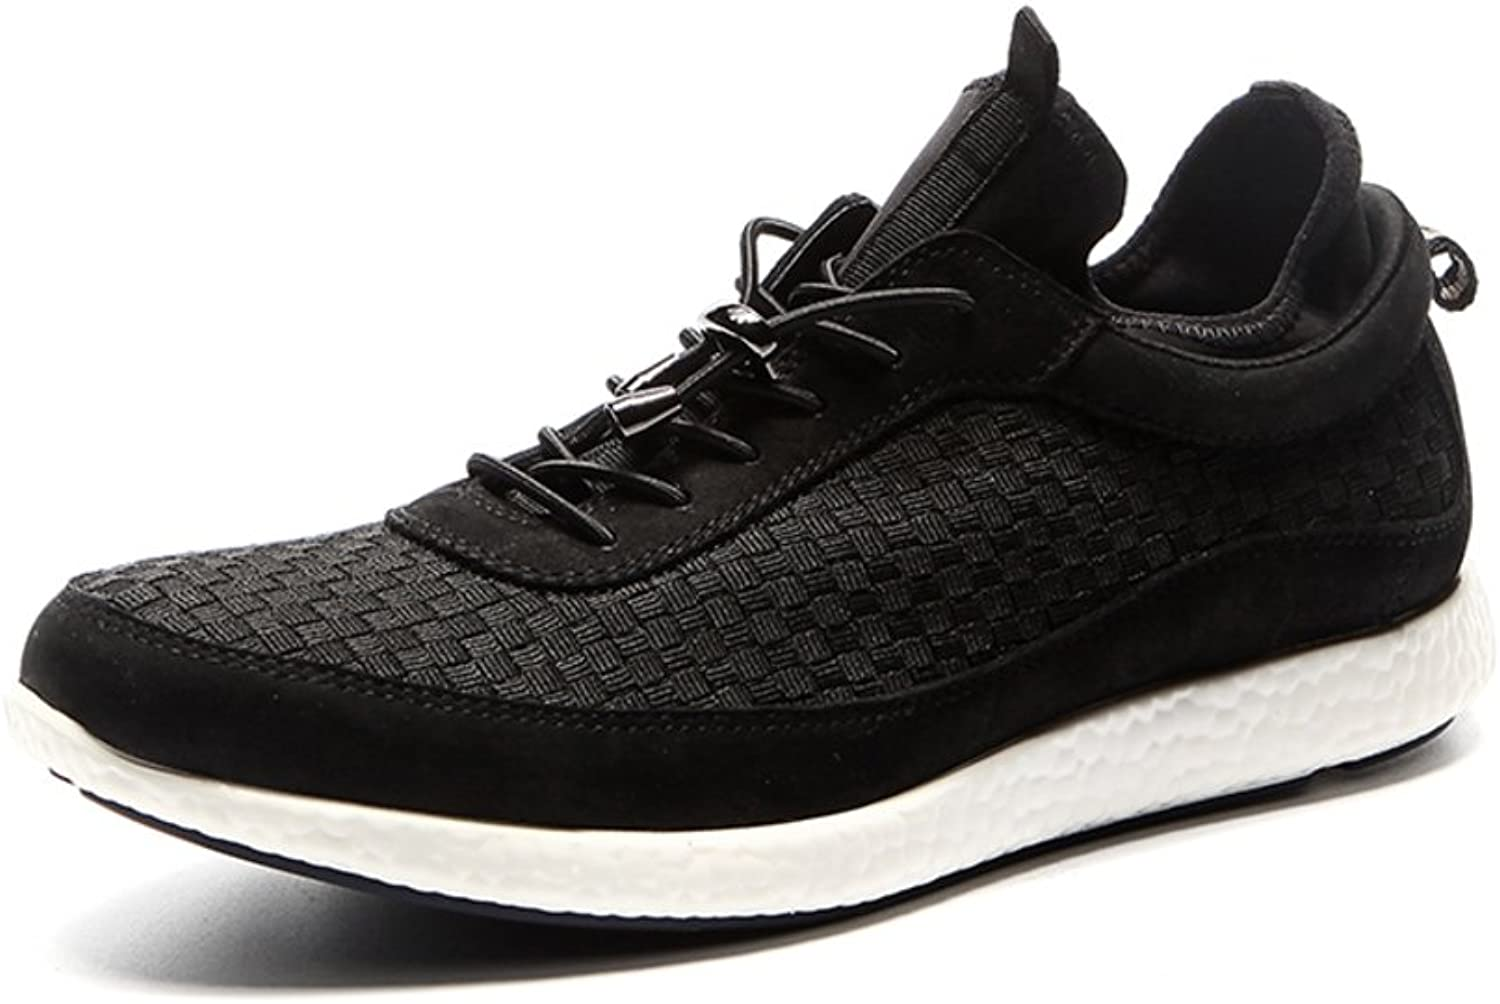 WLJSLLZYQ Fashion Casual Men's shoes Lightweight Breathable shoes Outdoor Leisure shoes